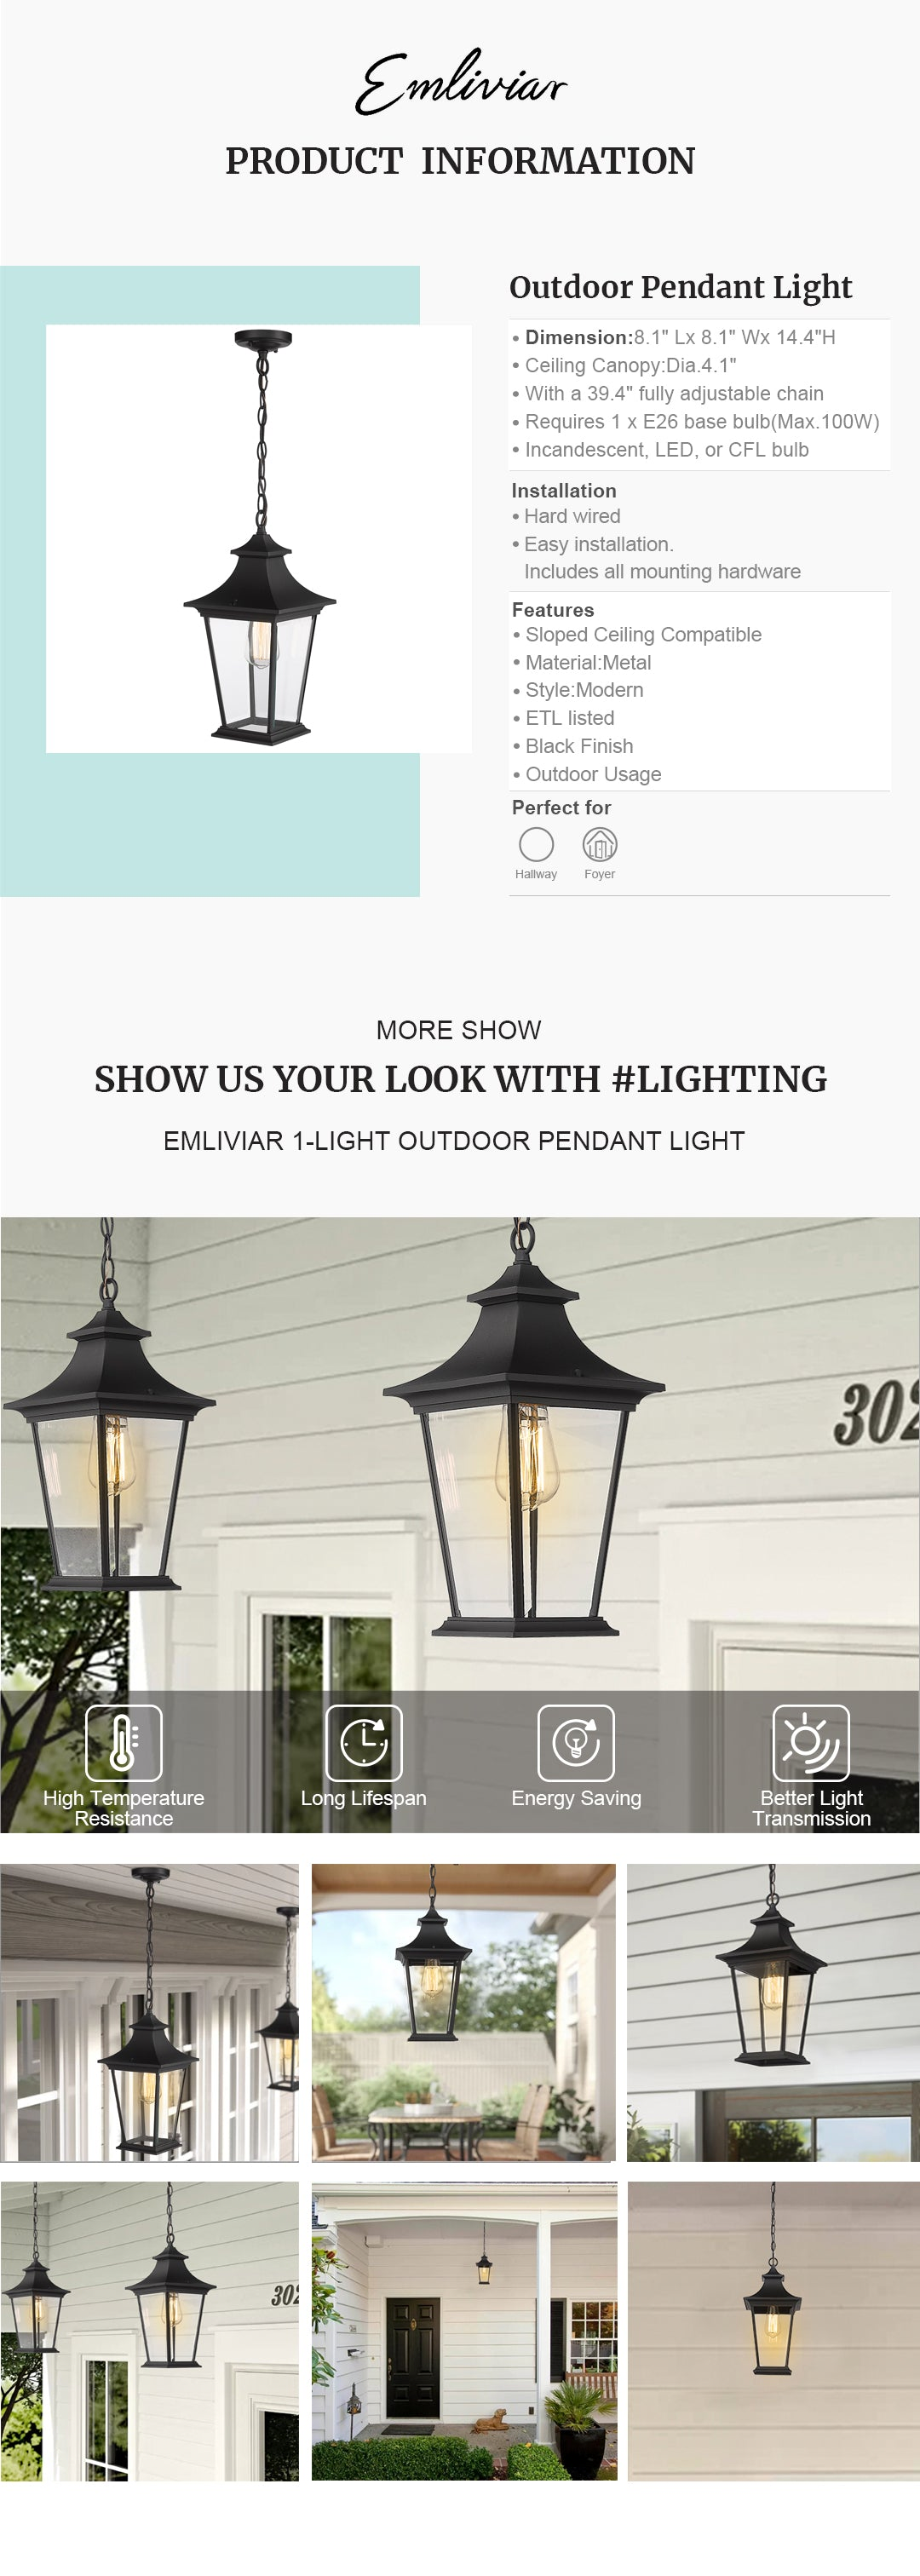 """Weather resistant and suitable for wet locations, this outdoor hanging light features sturdy metal construction and clear glass shade in black finish Easy installation with open bottom to allow for easy bulb replacement. Includes all mounting hardware. ETL listed with a one-year warranty Hard wired. Requires 1 x E26 base bulb(Max.100W). Bulb NOT included. Available bulb type: incandescent, LED, or CFL bulb This exterior pendant light is sloped ceiling compatible, suit the needs of your space. Perfect for porch, patio, gazebo, foyer, garage, hallway and entryway Dimension: 8.1"""" x 8.1"""" x 14.4""""(L x W x H); Ceiling Canopy: Dia.4.1""""; With a 39.4"""" fully adjustable chain"""